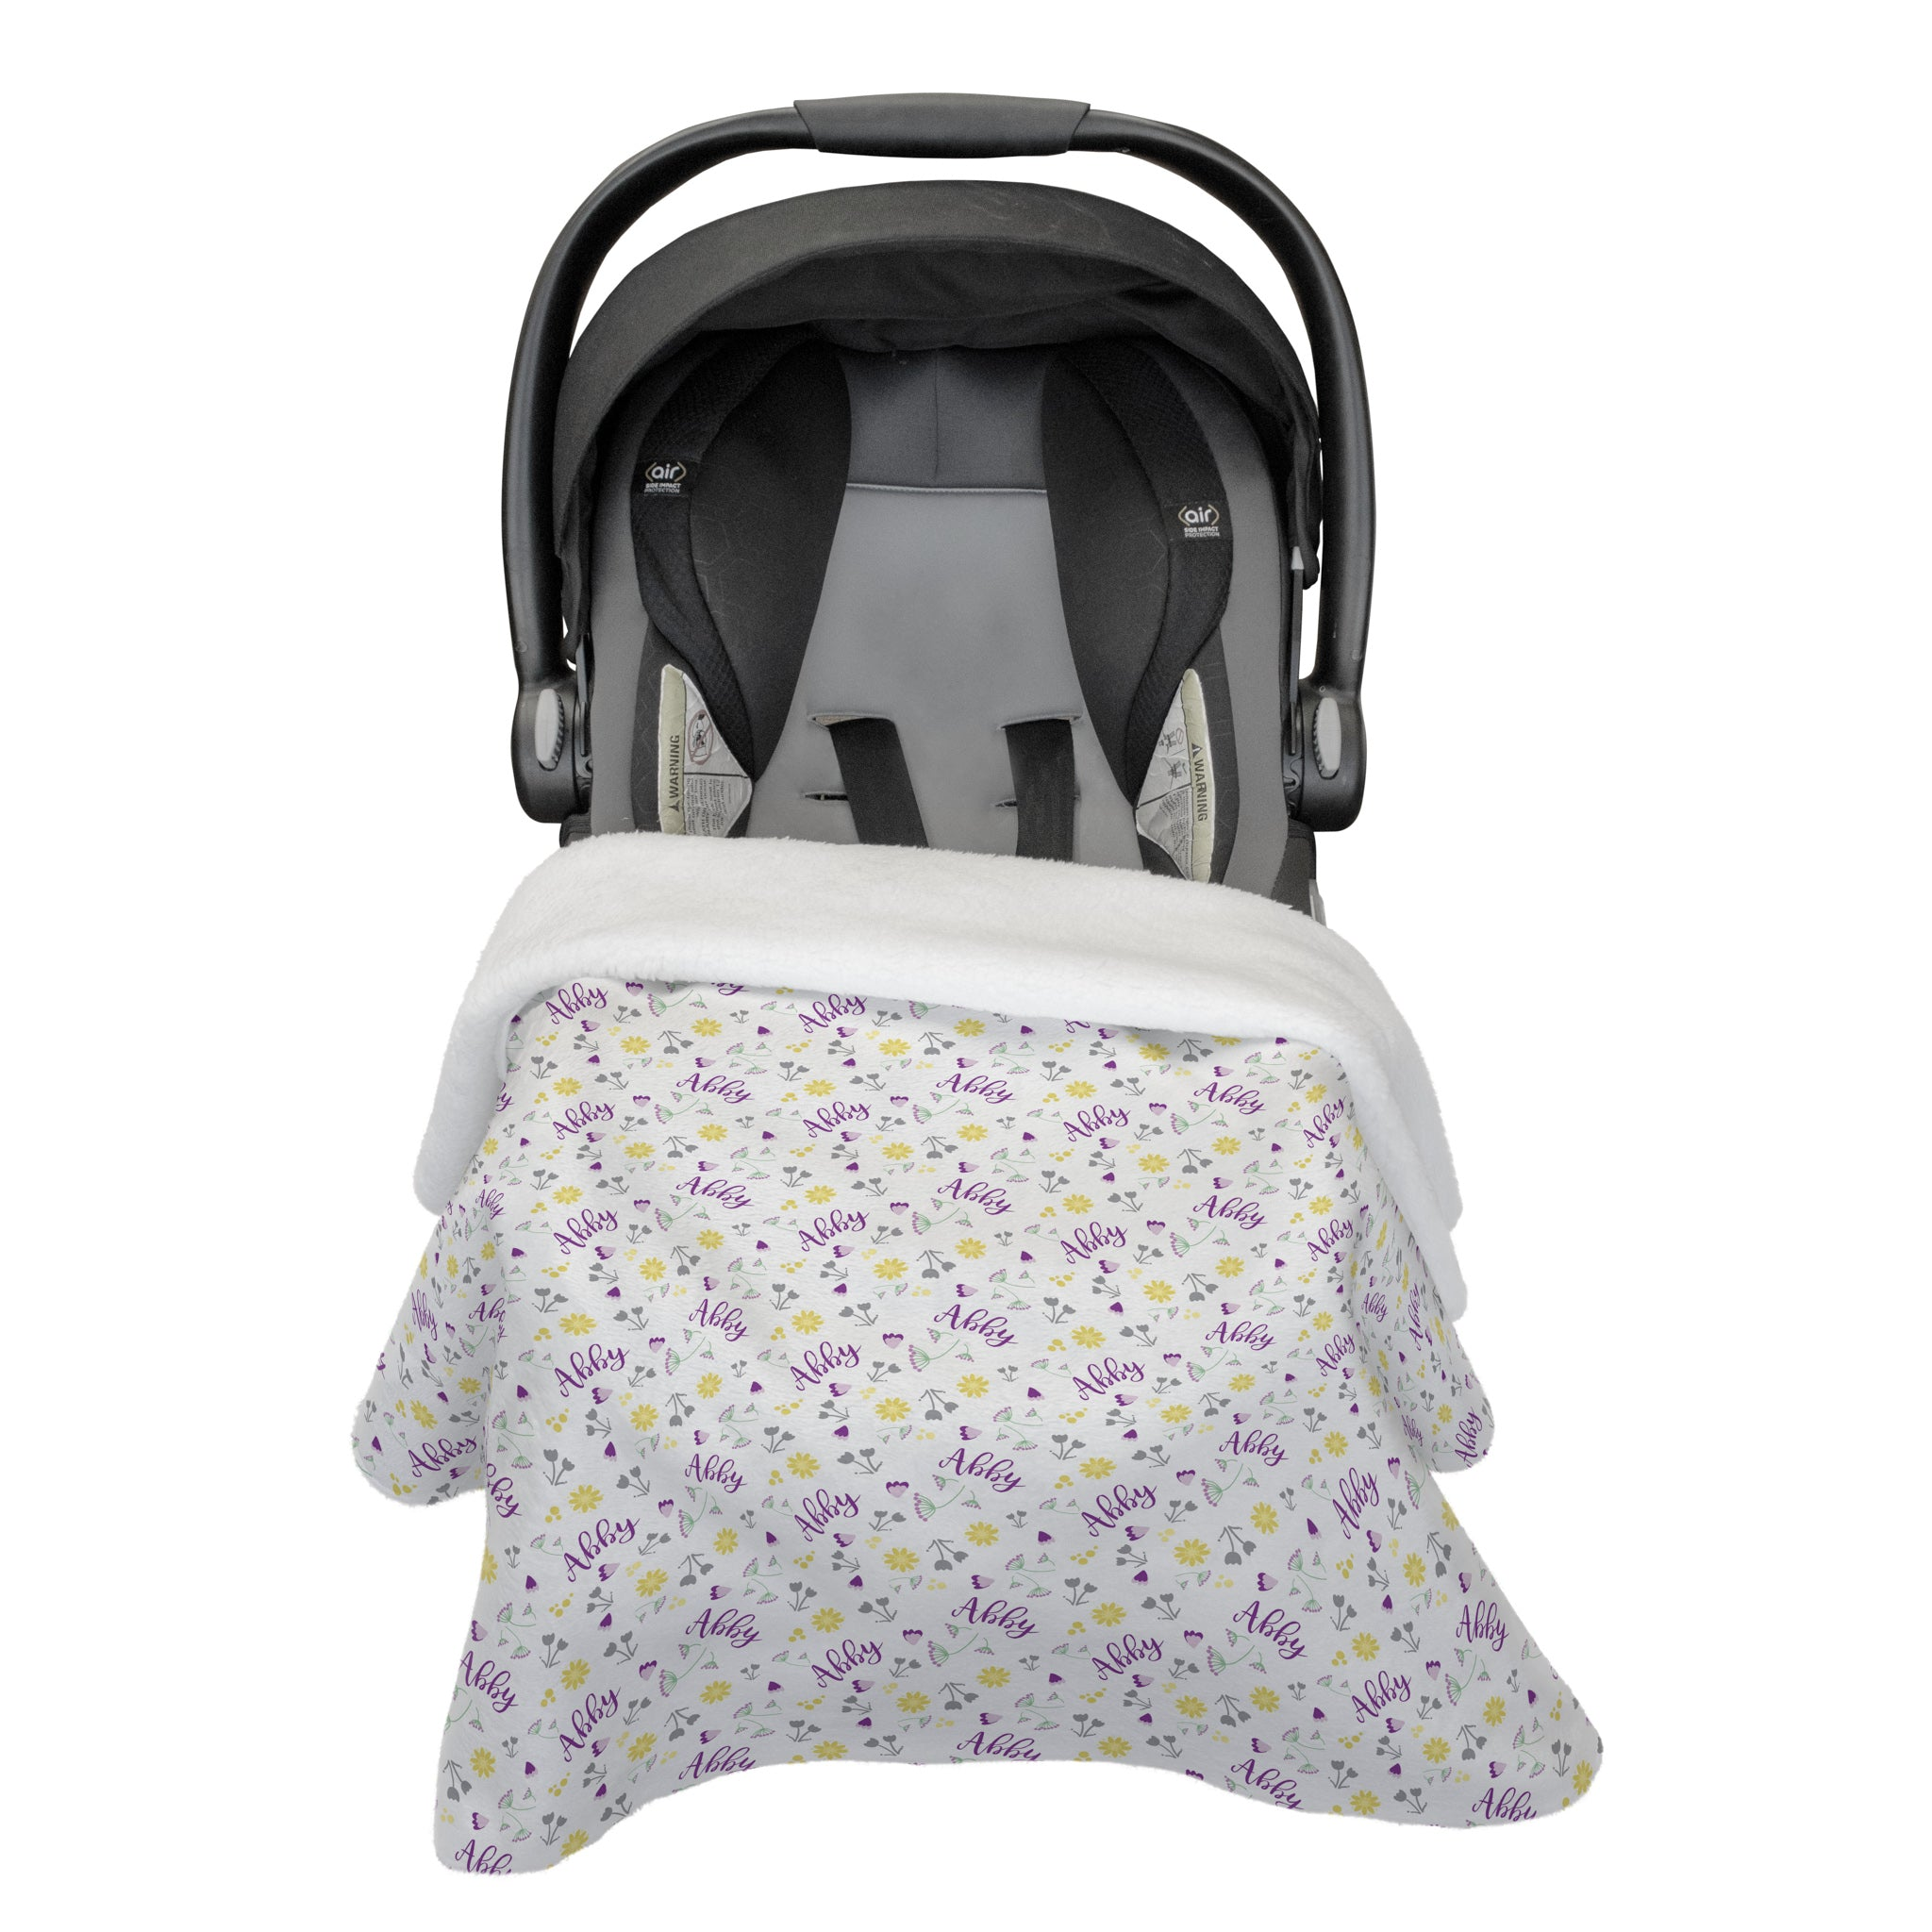 Abby's Wildflower | Rose Garden | Car Seat Blanket